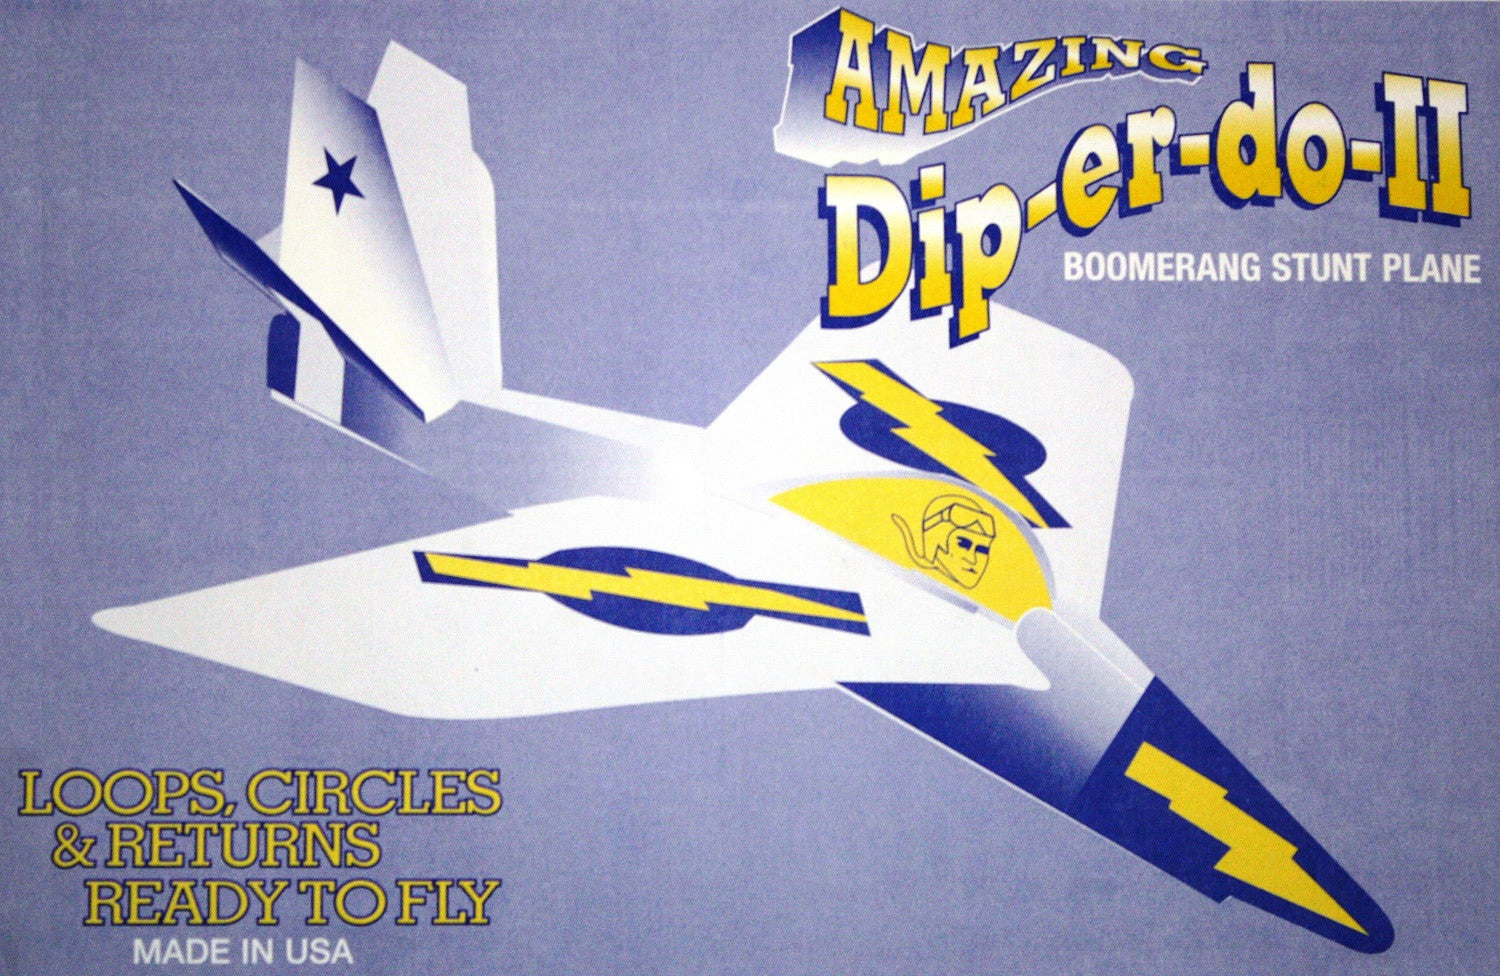 The Dip-er-do II Boomerang Stunt Plane - Pack of 2 Airplanes - Off The Wall Toys and Gifts